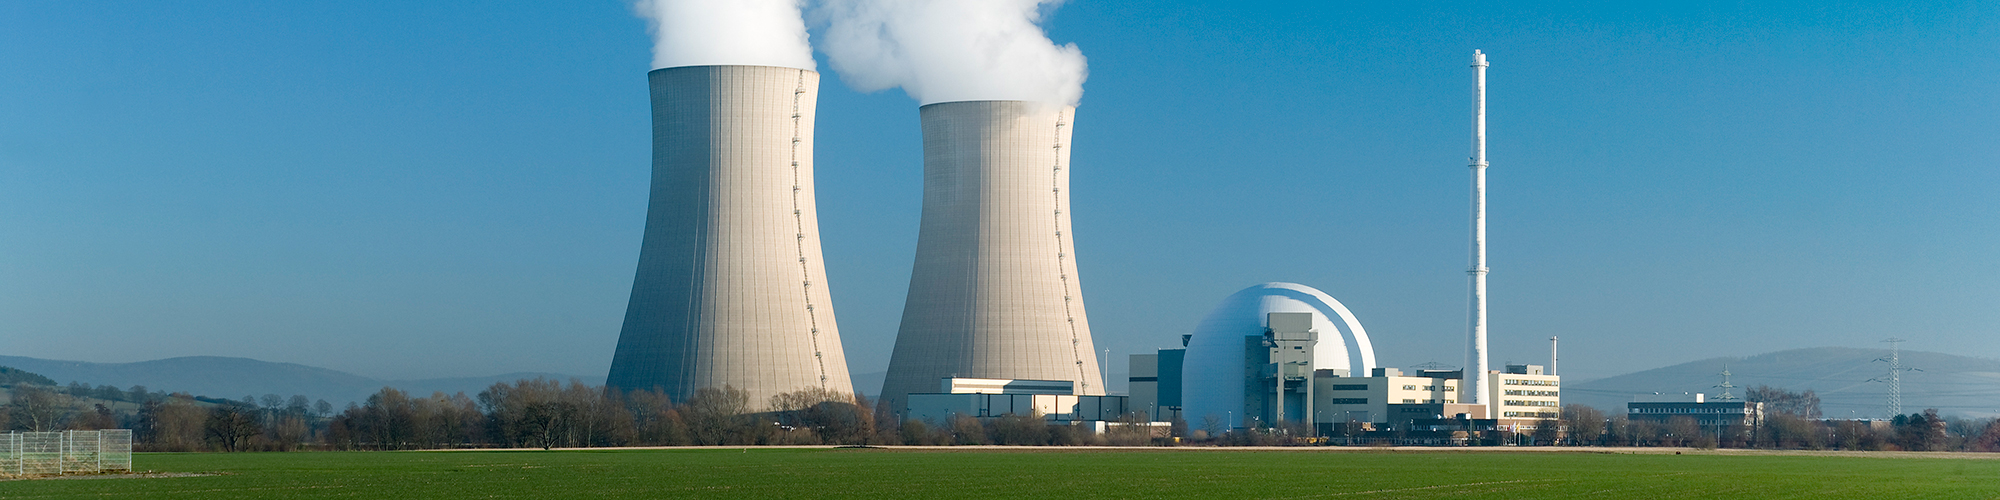 energie_nucleaire_2000x500